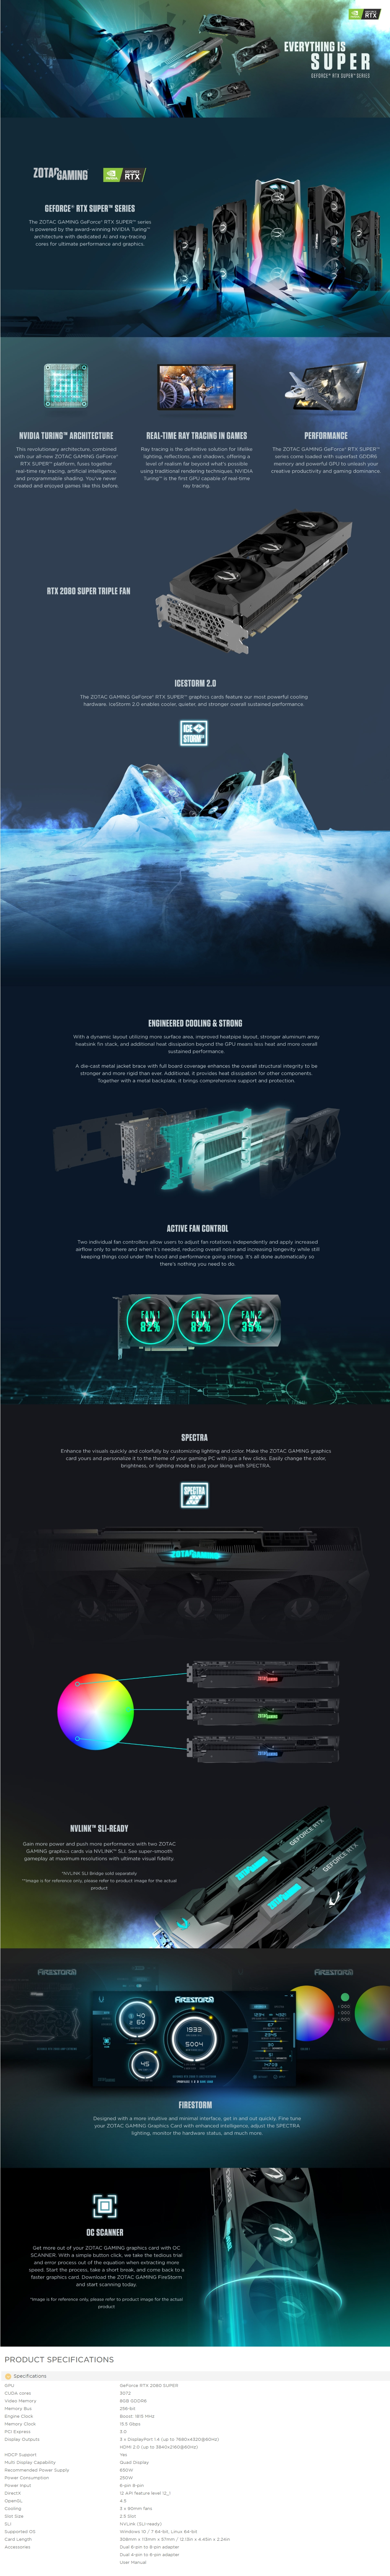 A large marketing image providing additional information about the product ZOTAC GAMING Geforce RTX2080 Super Triple Fan 8GB GDDR6  - Additional alt info not provided